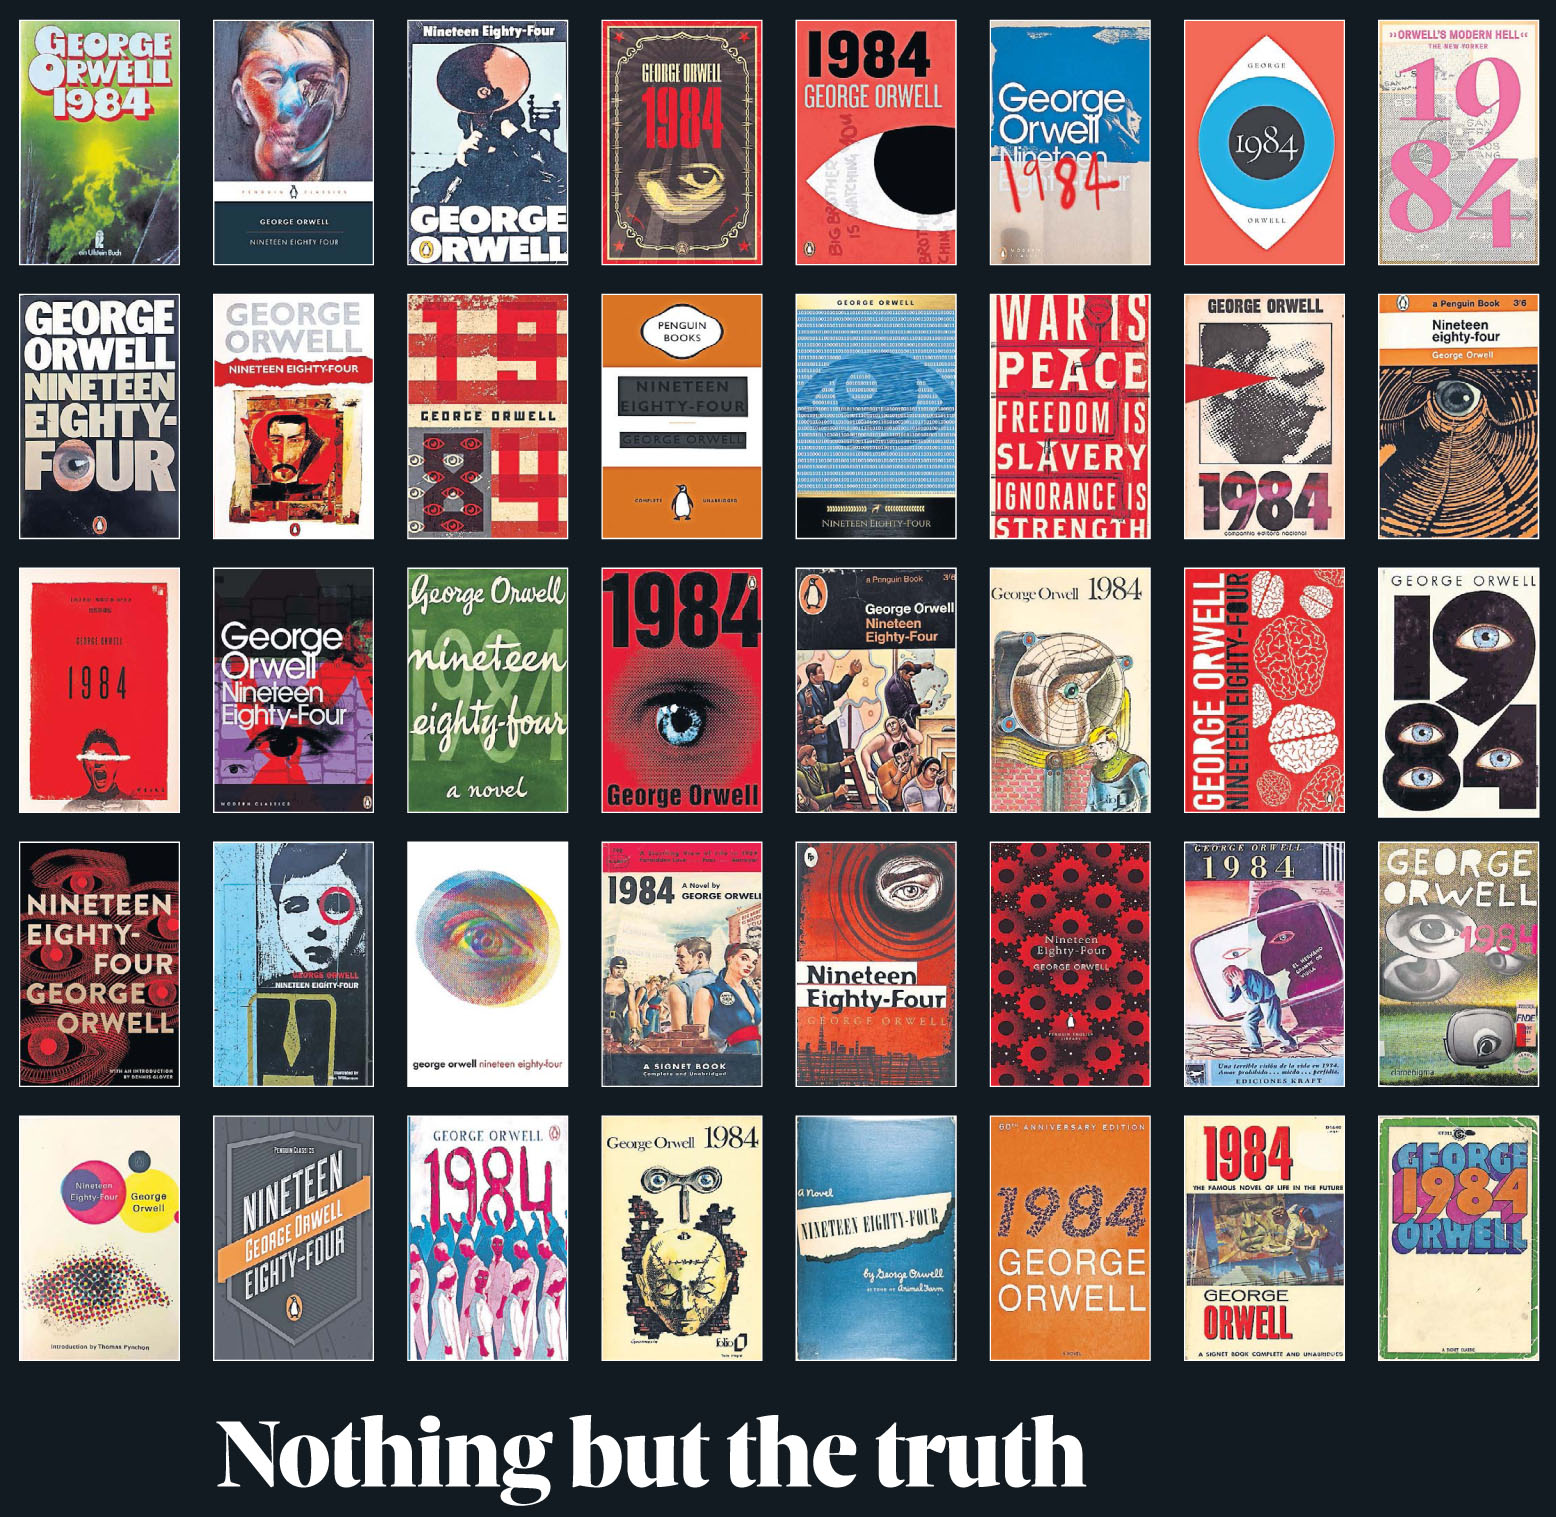 The Observer The New Review May 19 2019 1984.jpg